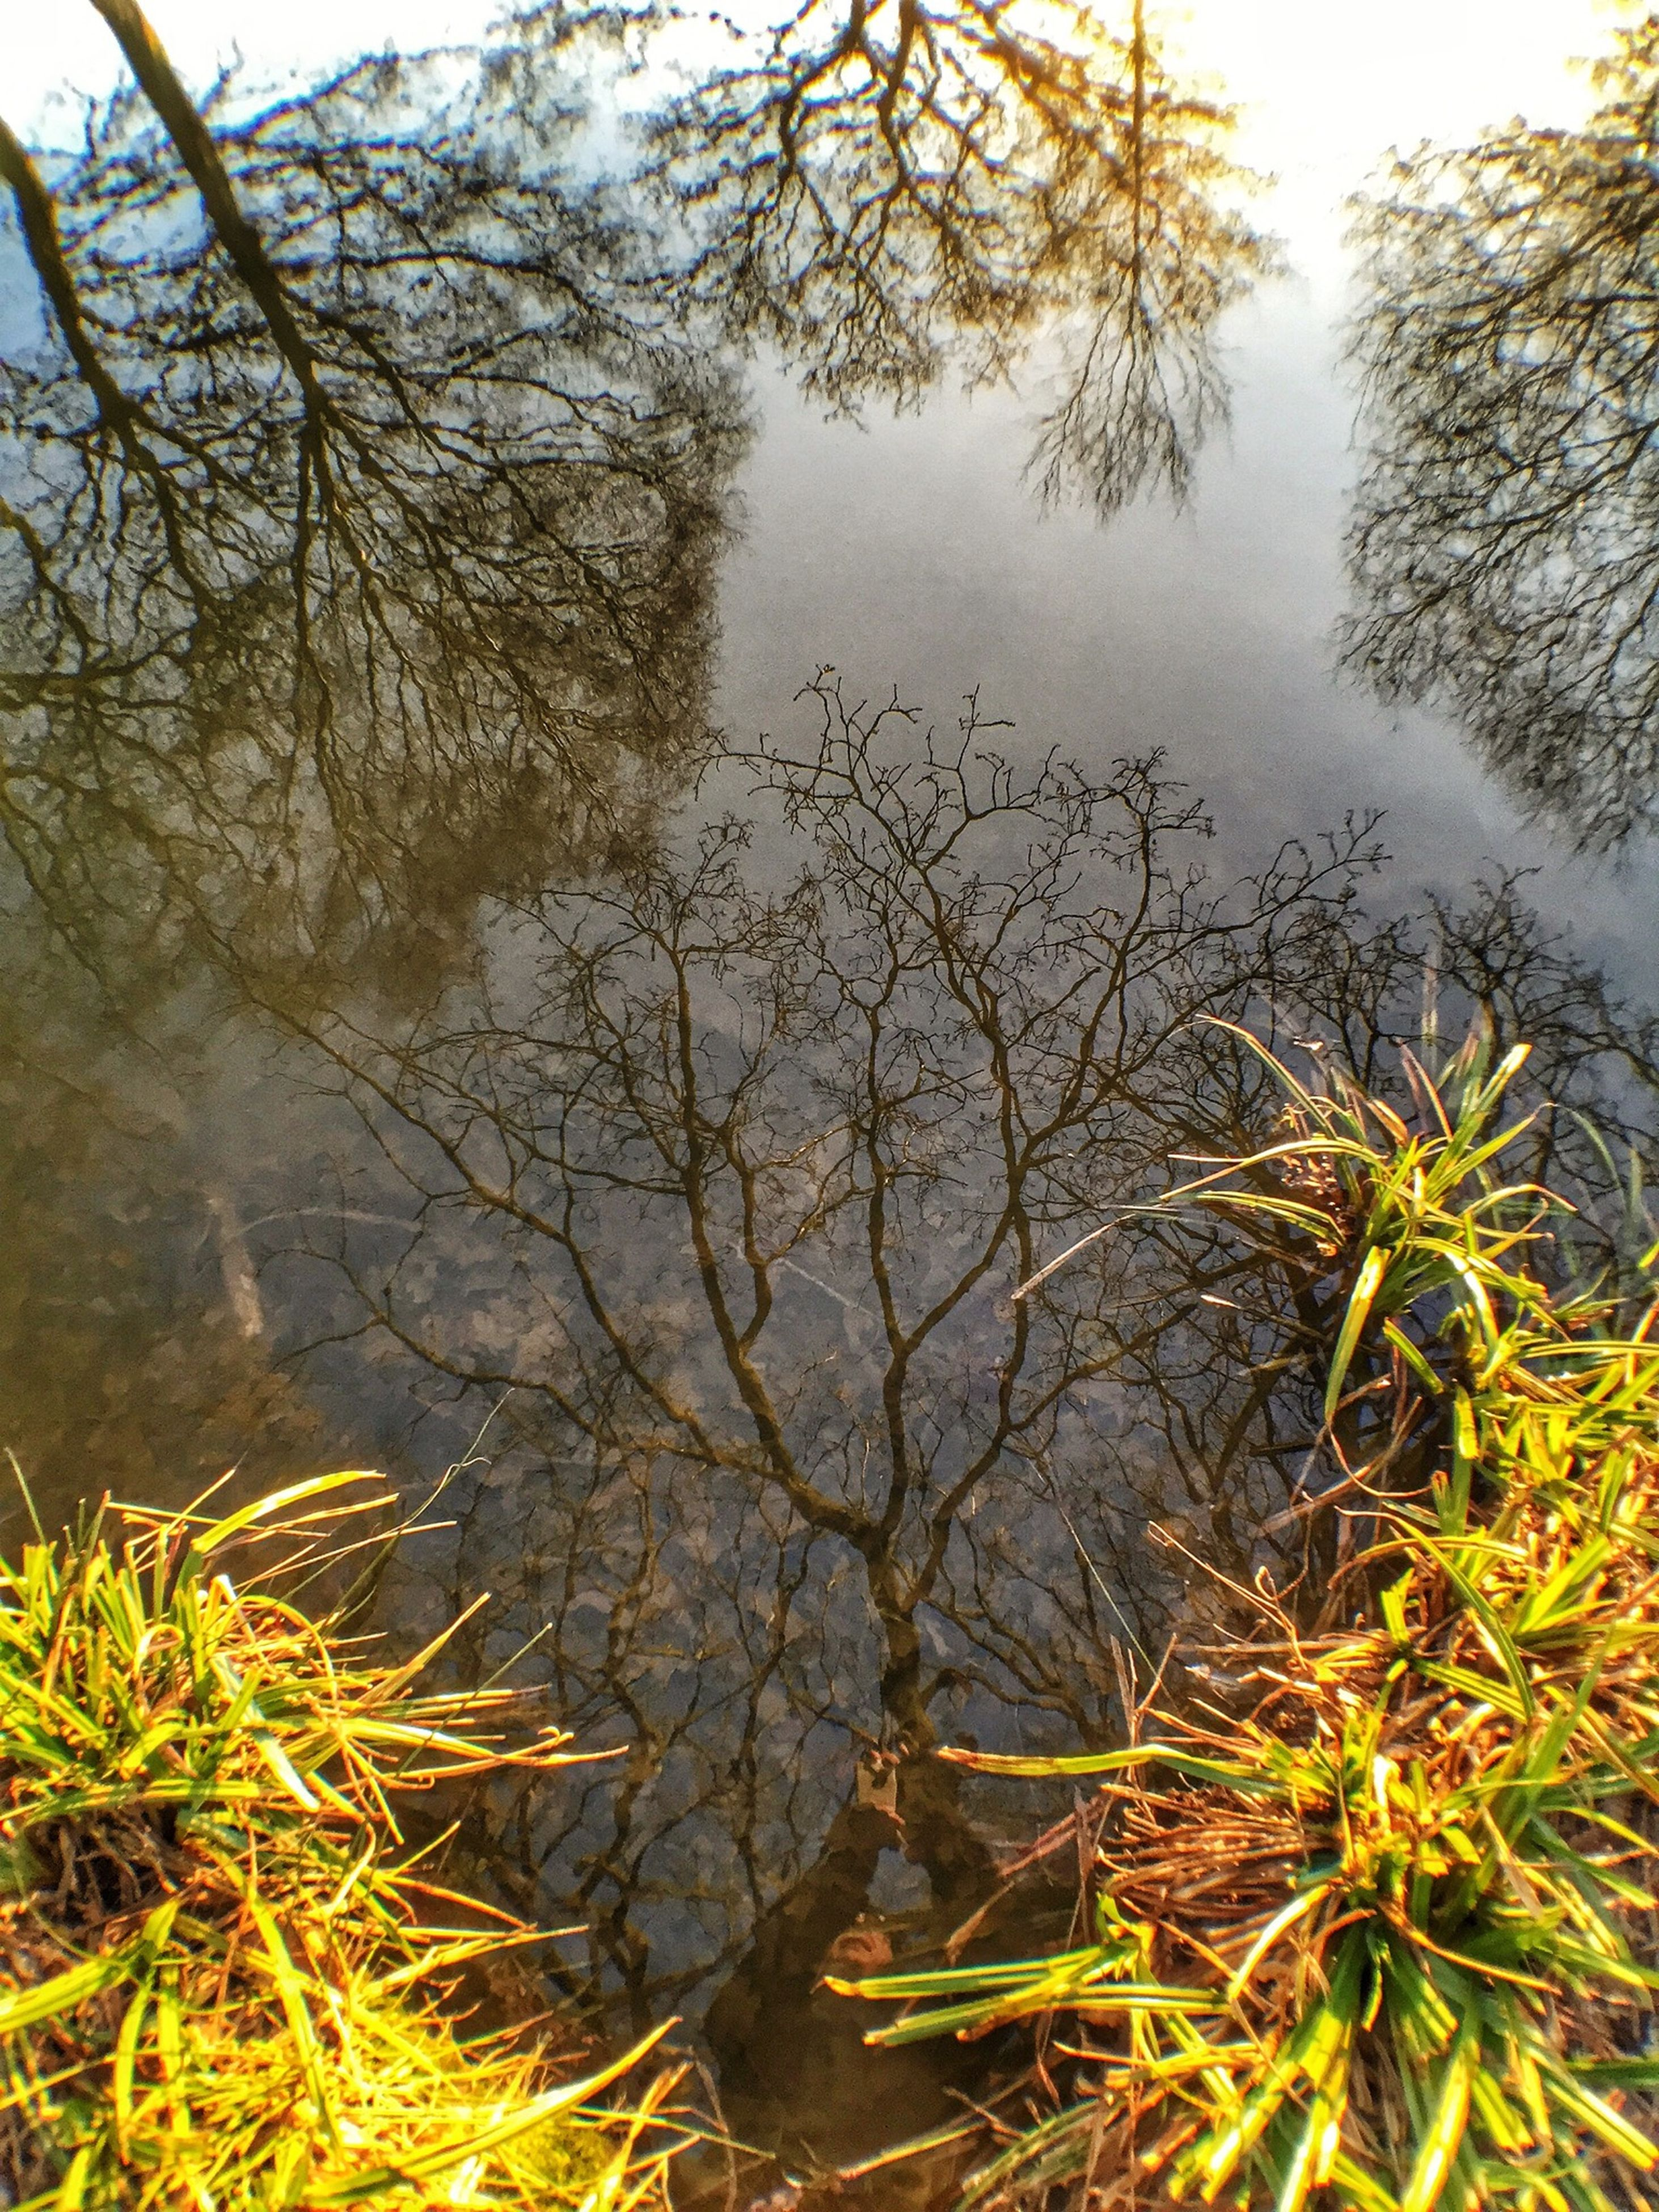 water, tranquility, lake, branch, tree, tranquil scene, nature, growth, reflection, plant, beauty in nature, scenics, grass, bare tree, lakeshore, sky, leaf, day, outdoors, idyllic